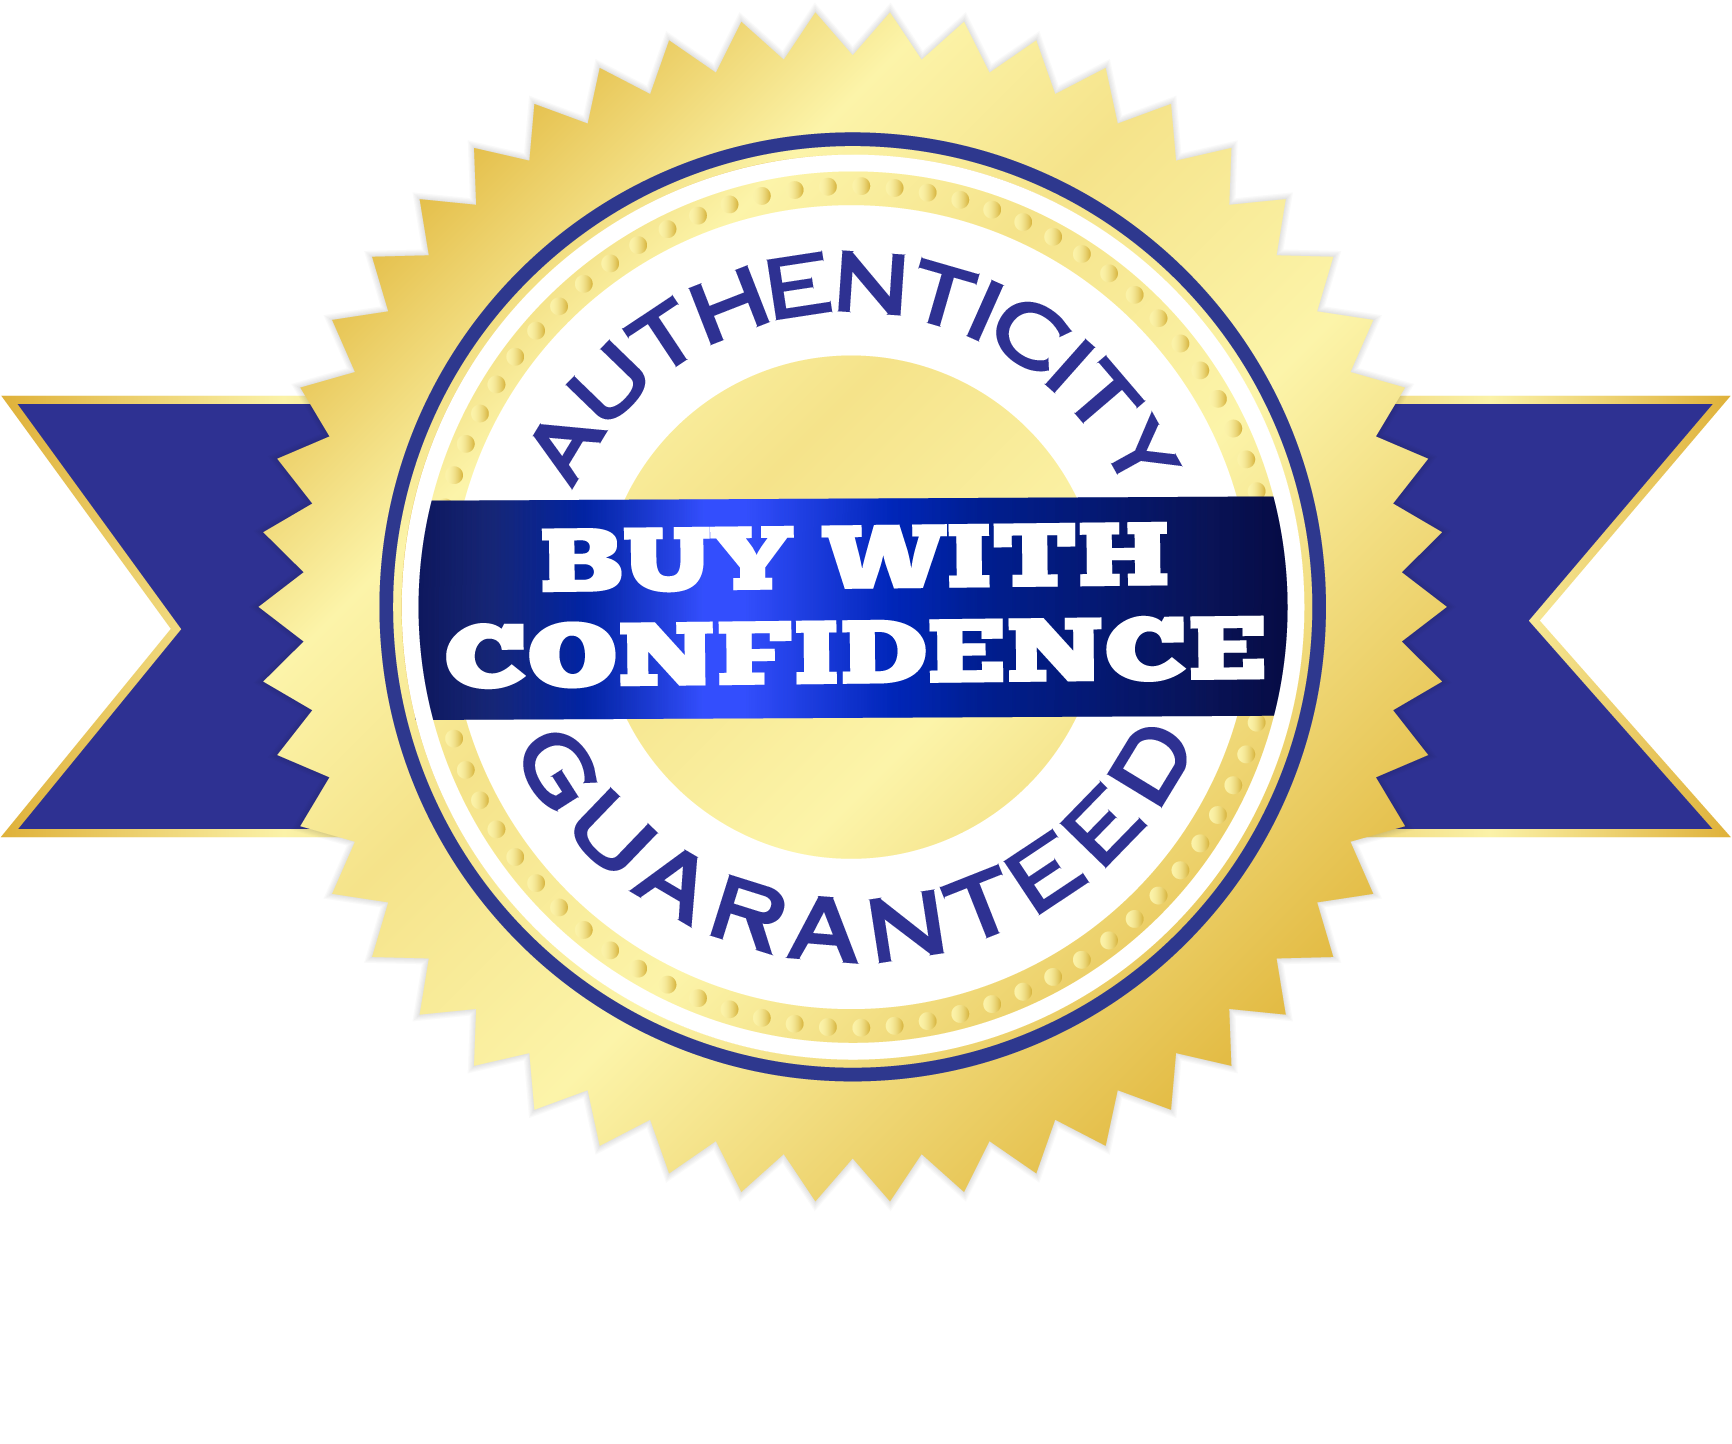 Authenticity seal final b8ec156be2eef42453dbca973ef146dbf669842d01a1d47e4043e3957bfdccaa